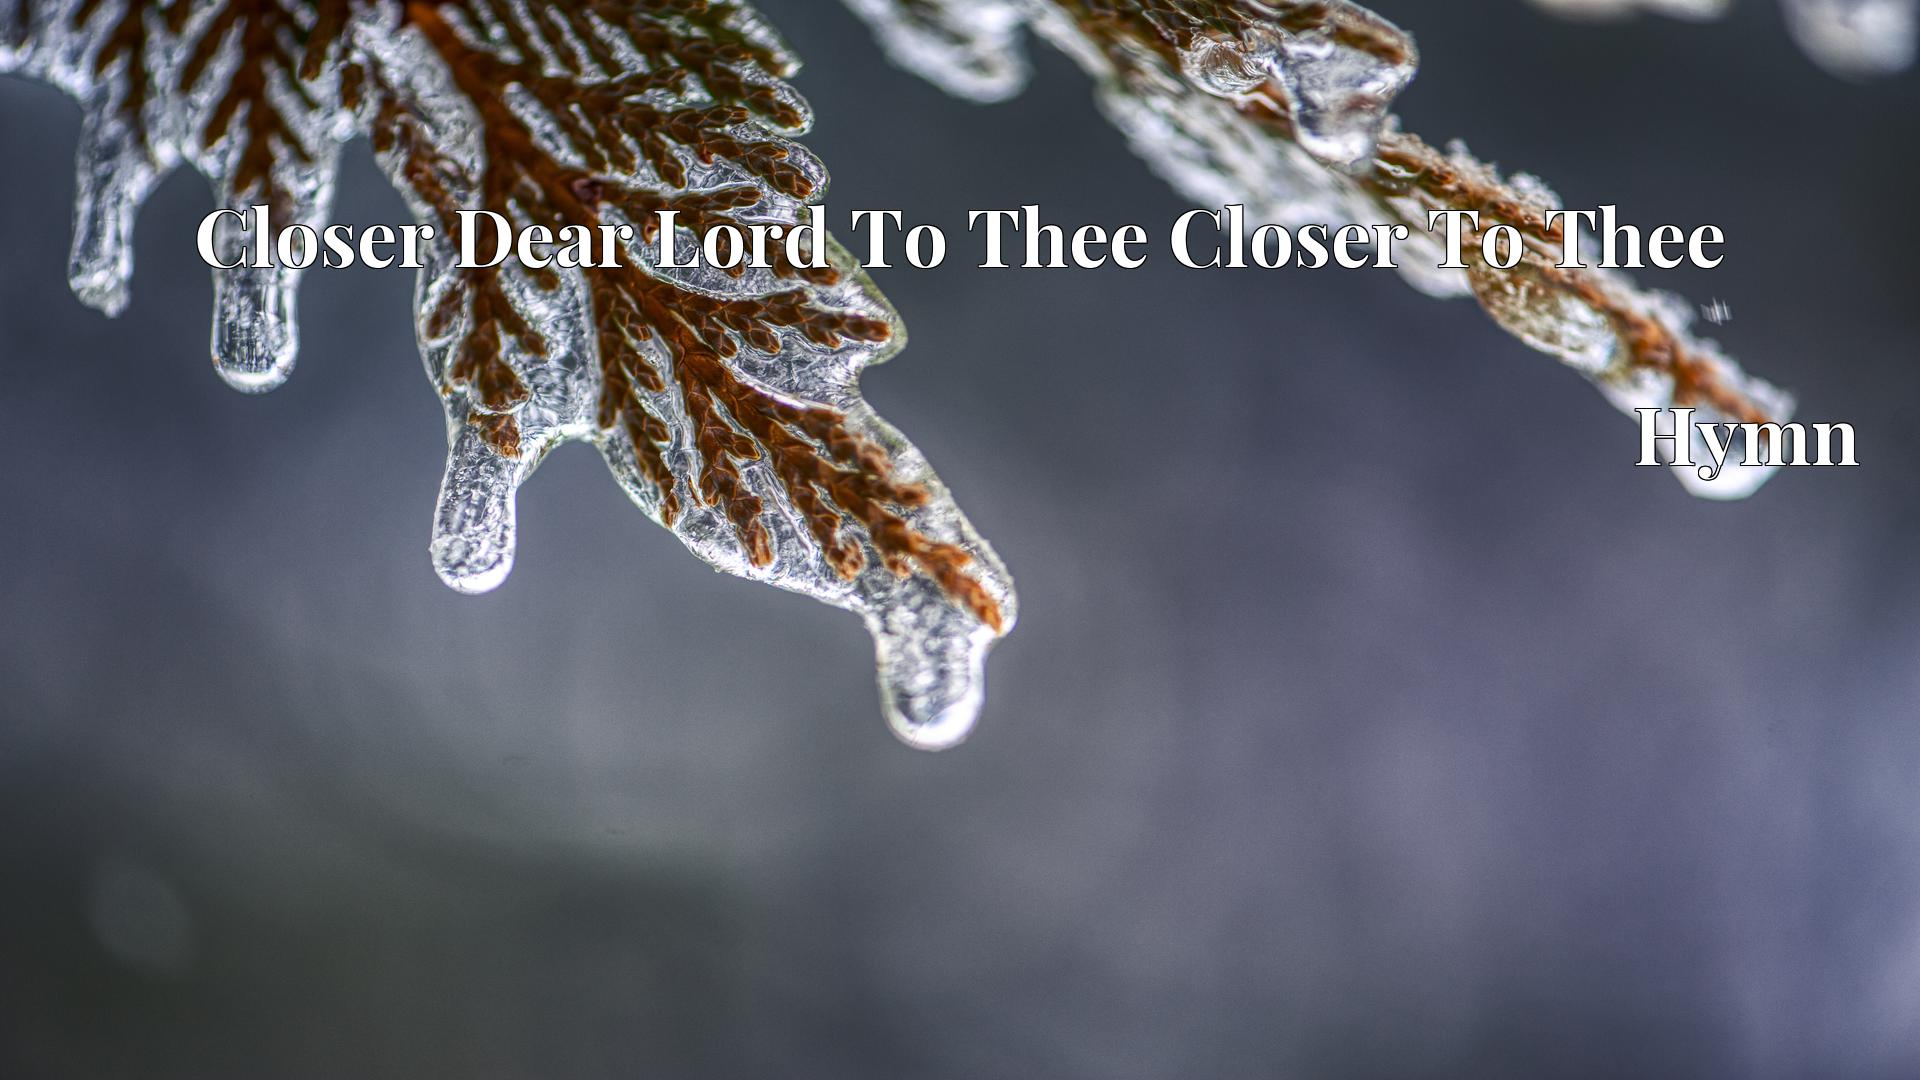 Closer Dear Lord To Thee Closer To Thee - Hymn